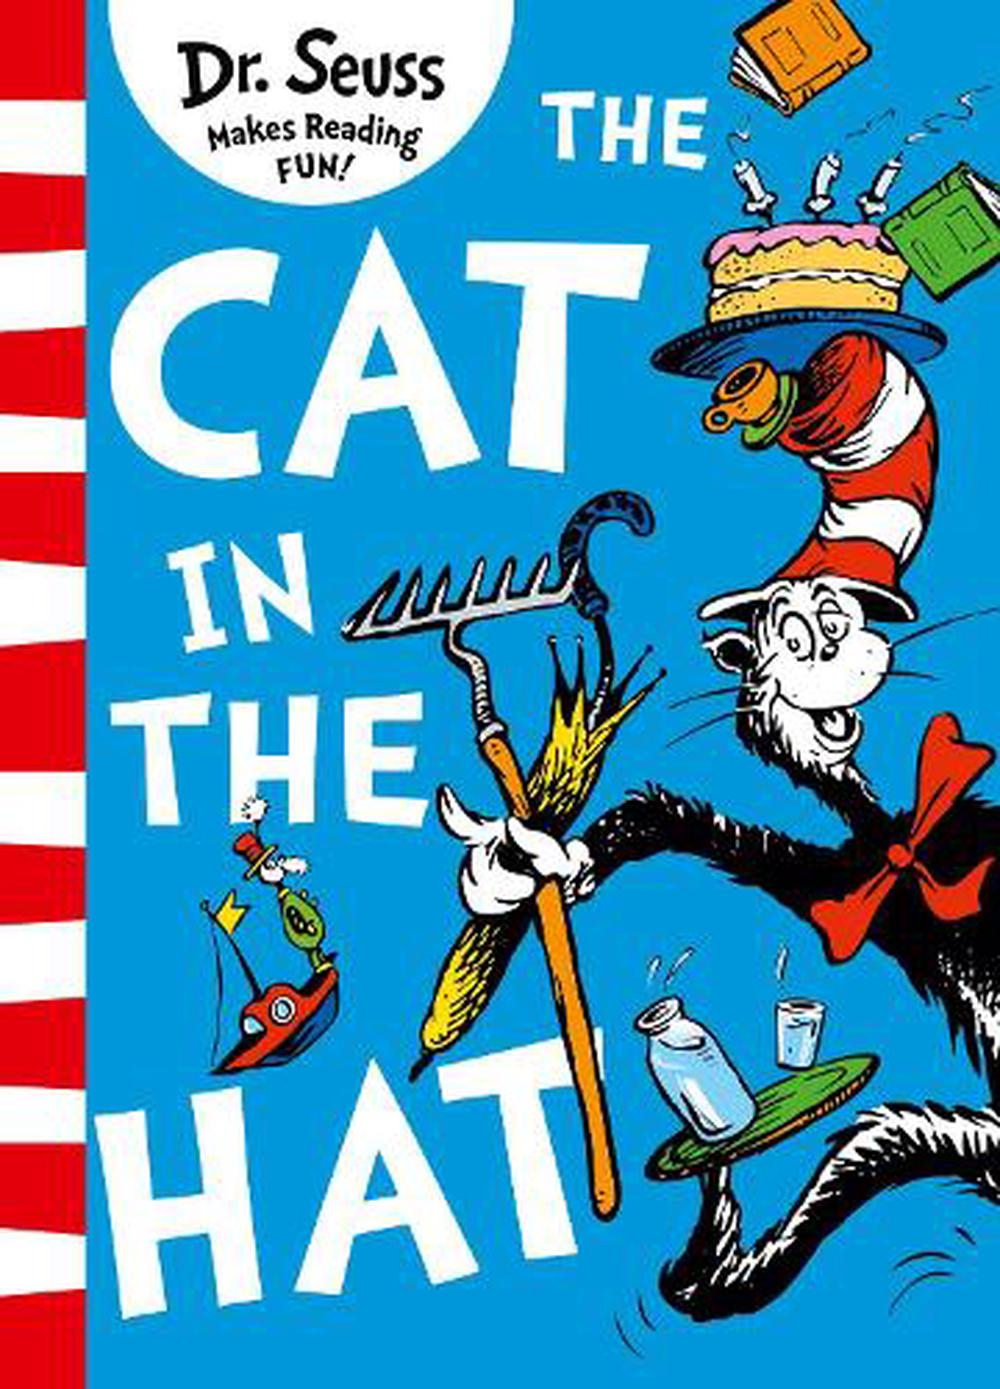 cat in the hat by dr seuss paperback 9780008201517 buy online